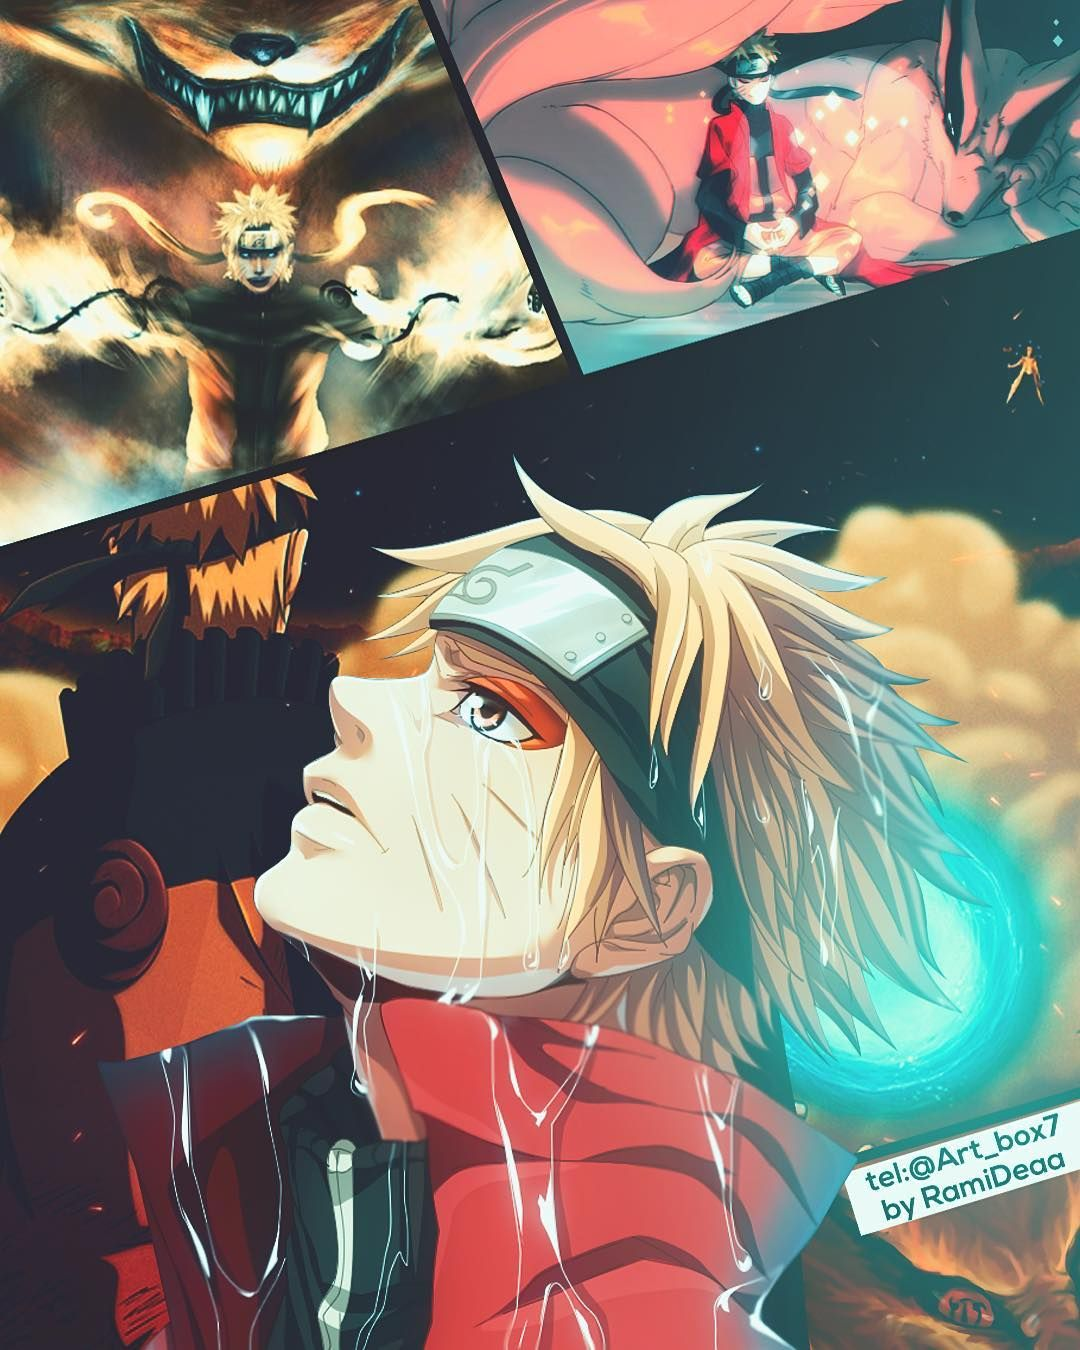 naruto anime art design wallpaper pinterest